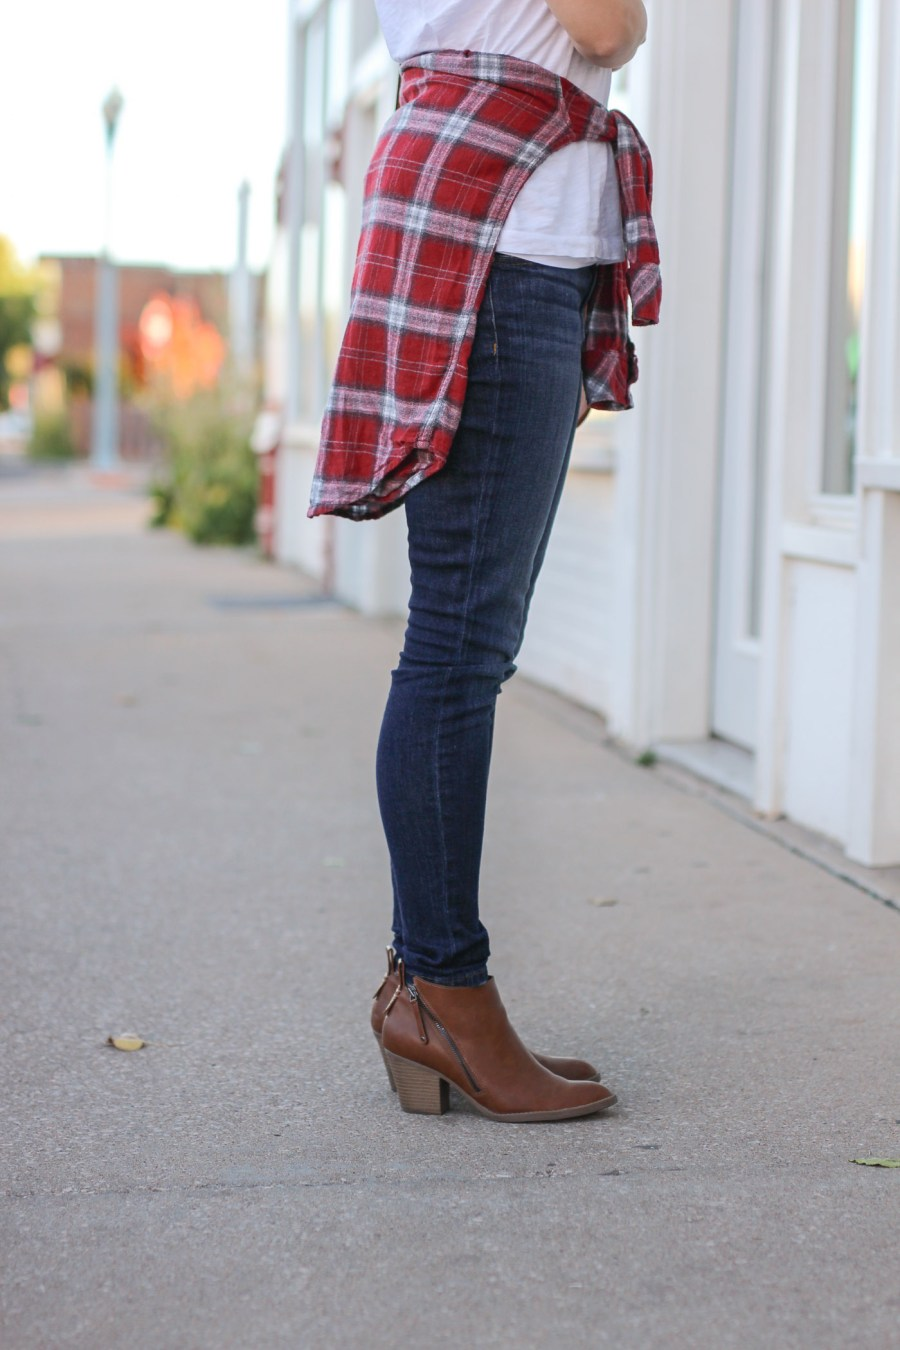 cognac booties, fashion blog, fall fashion, pinterest outfit, Treats and Trends, Jamie Kamber